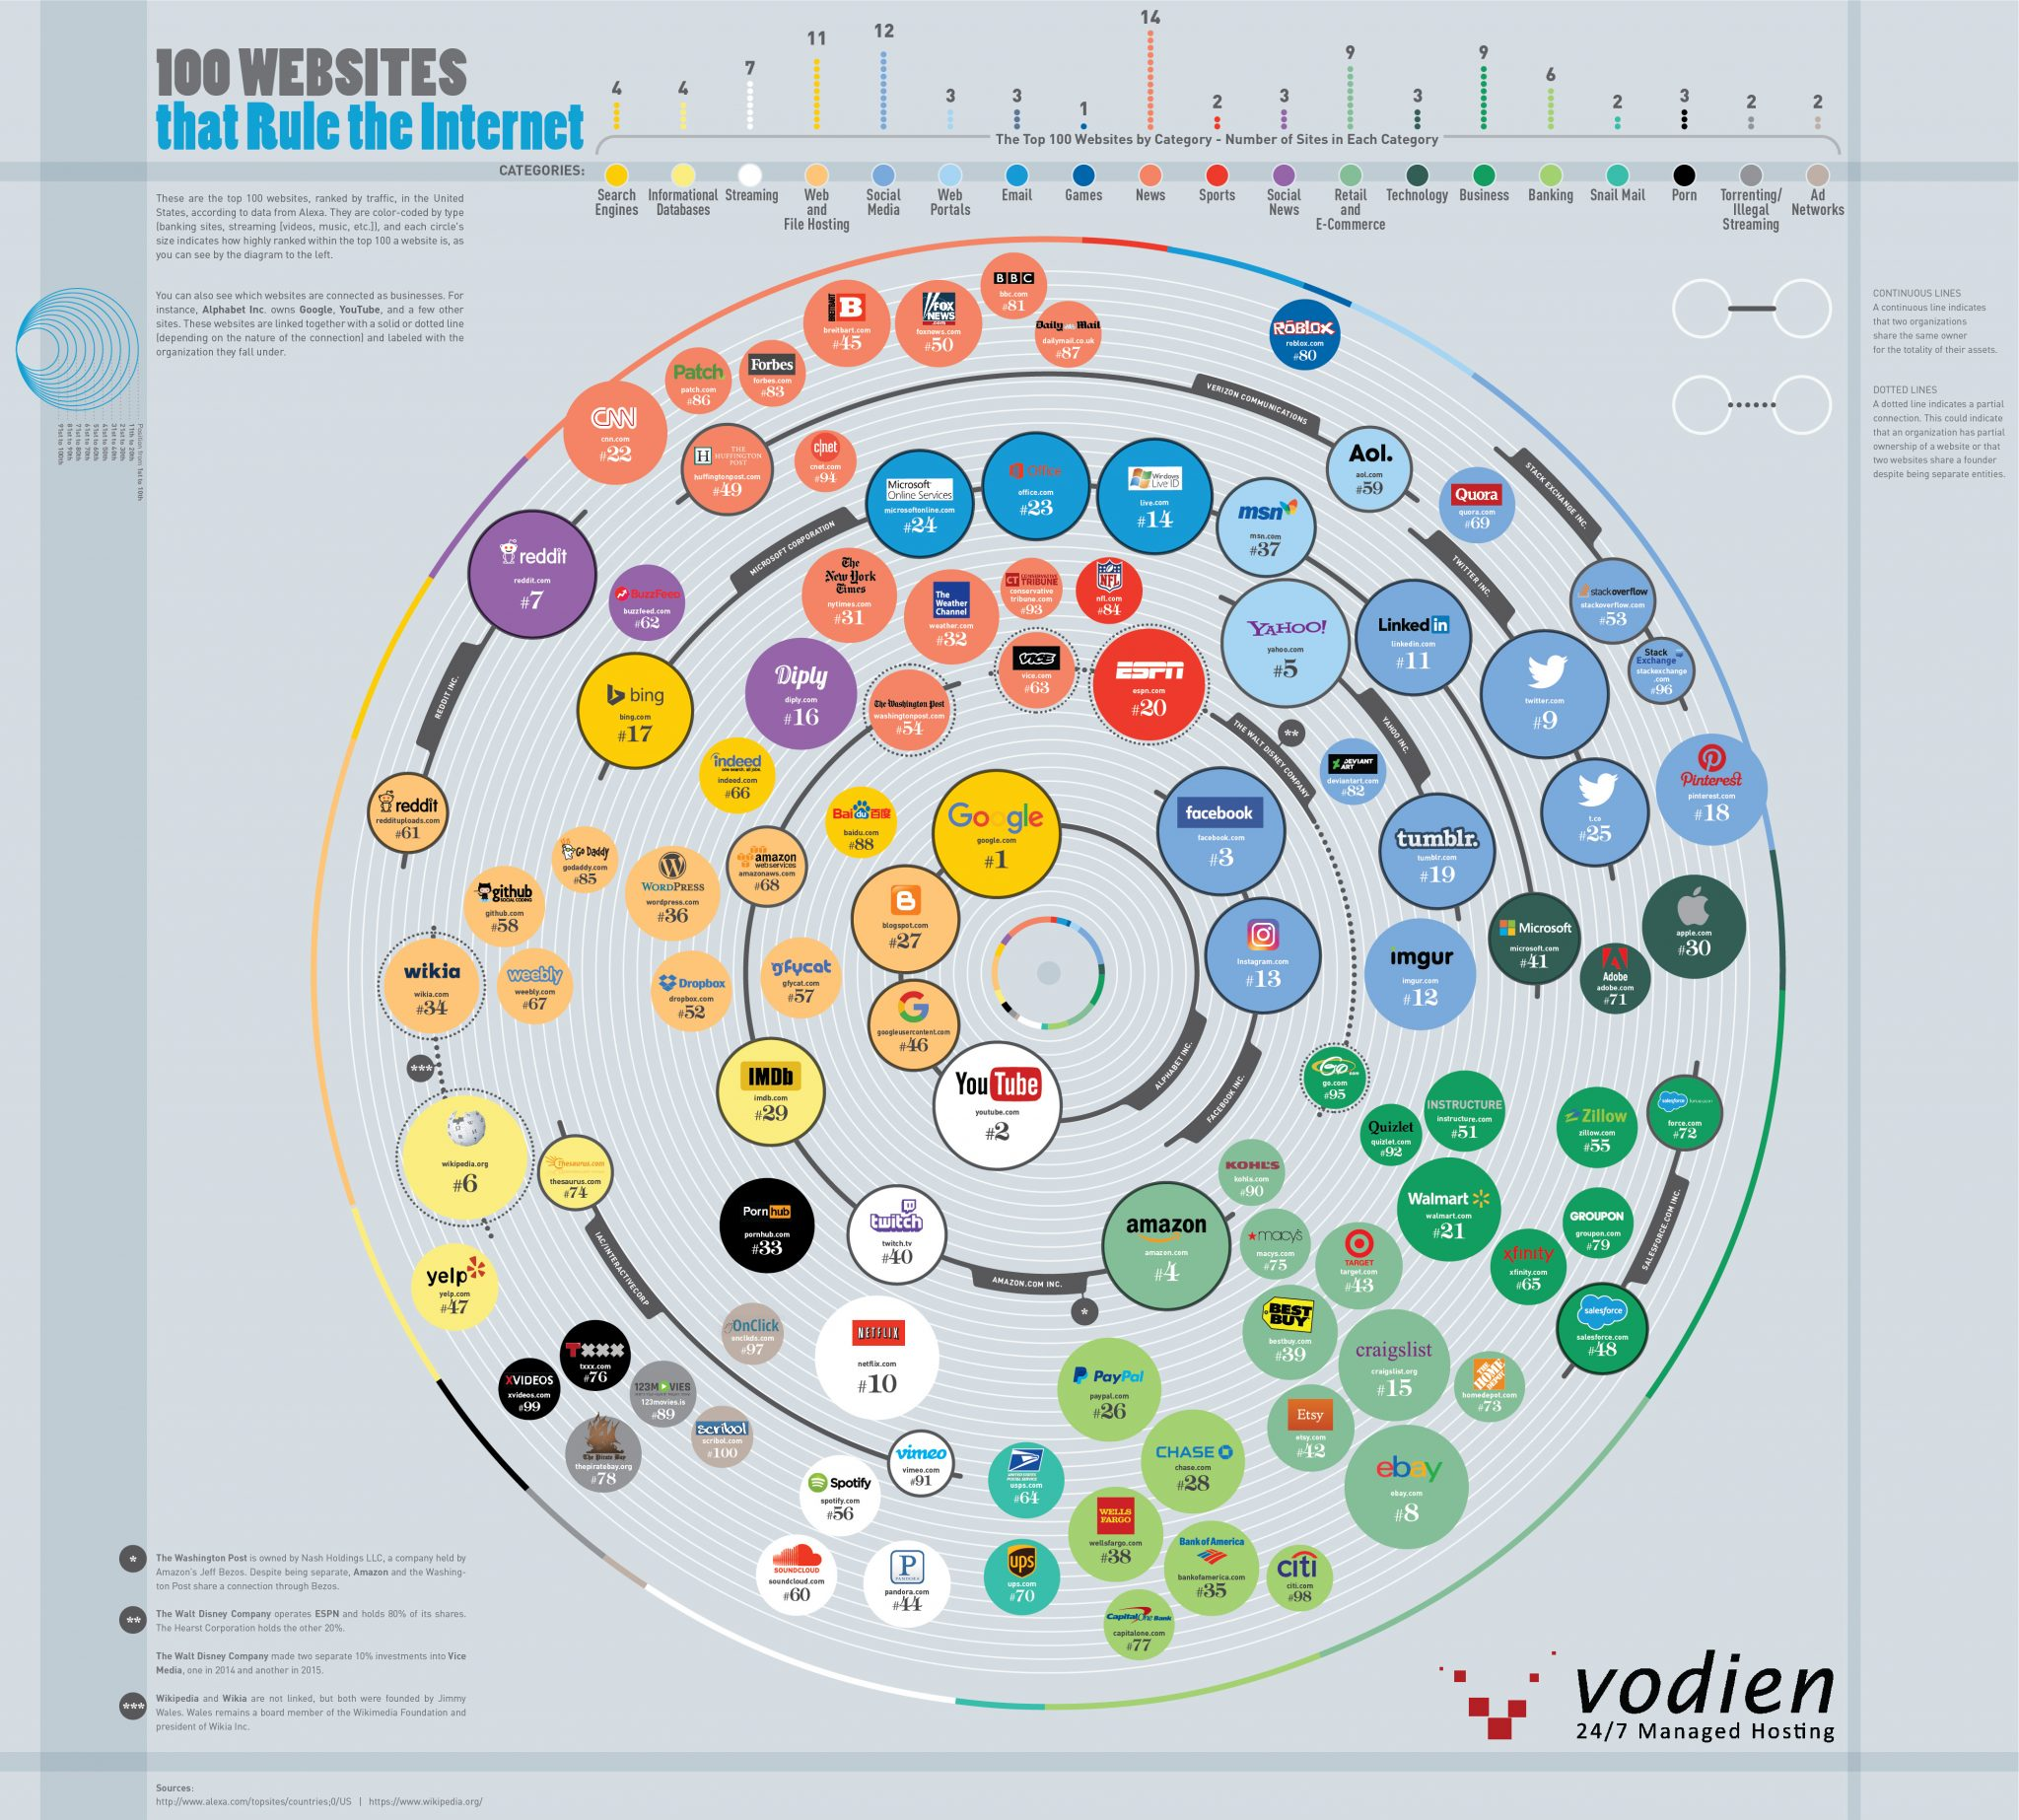 Infographic shows the 100 top websites based on monthly traffic